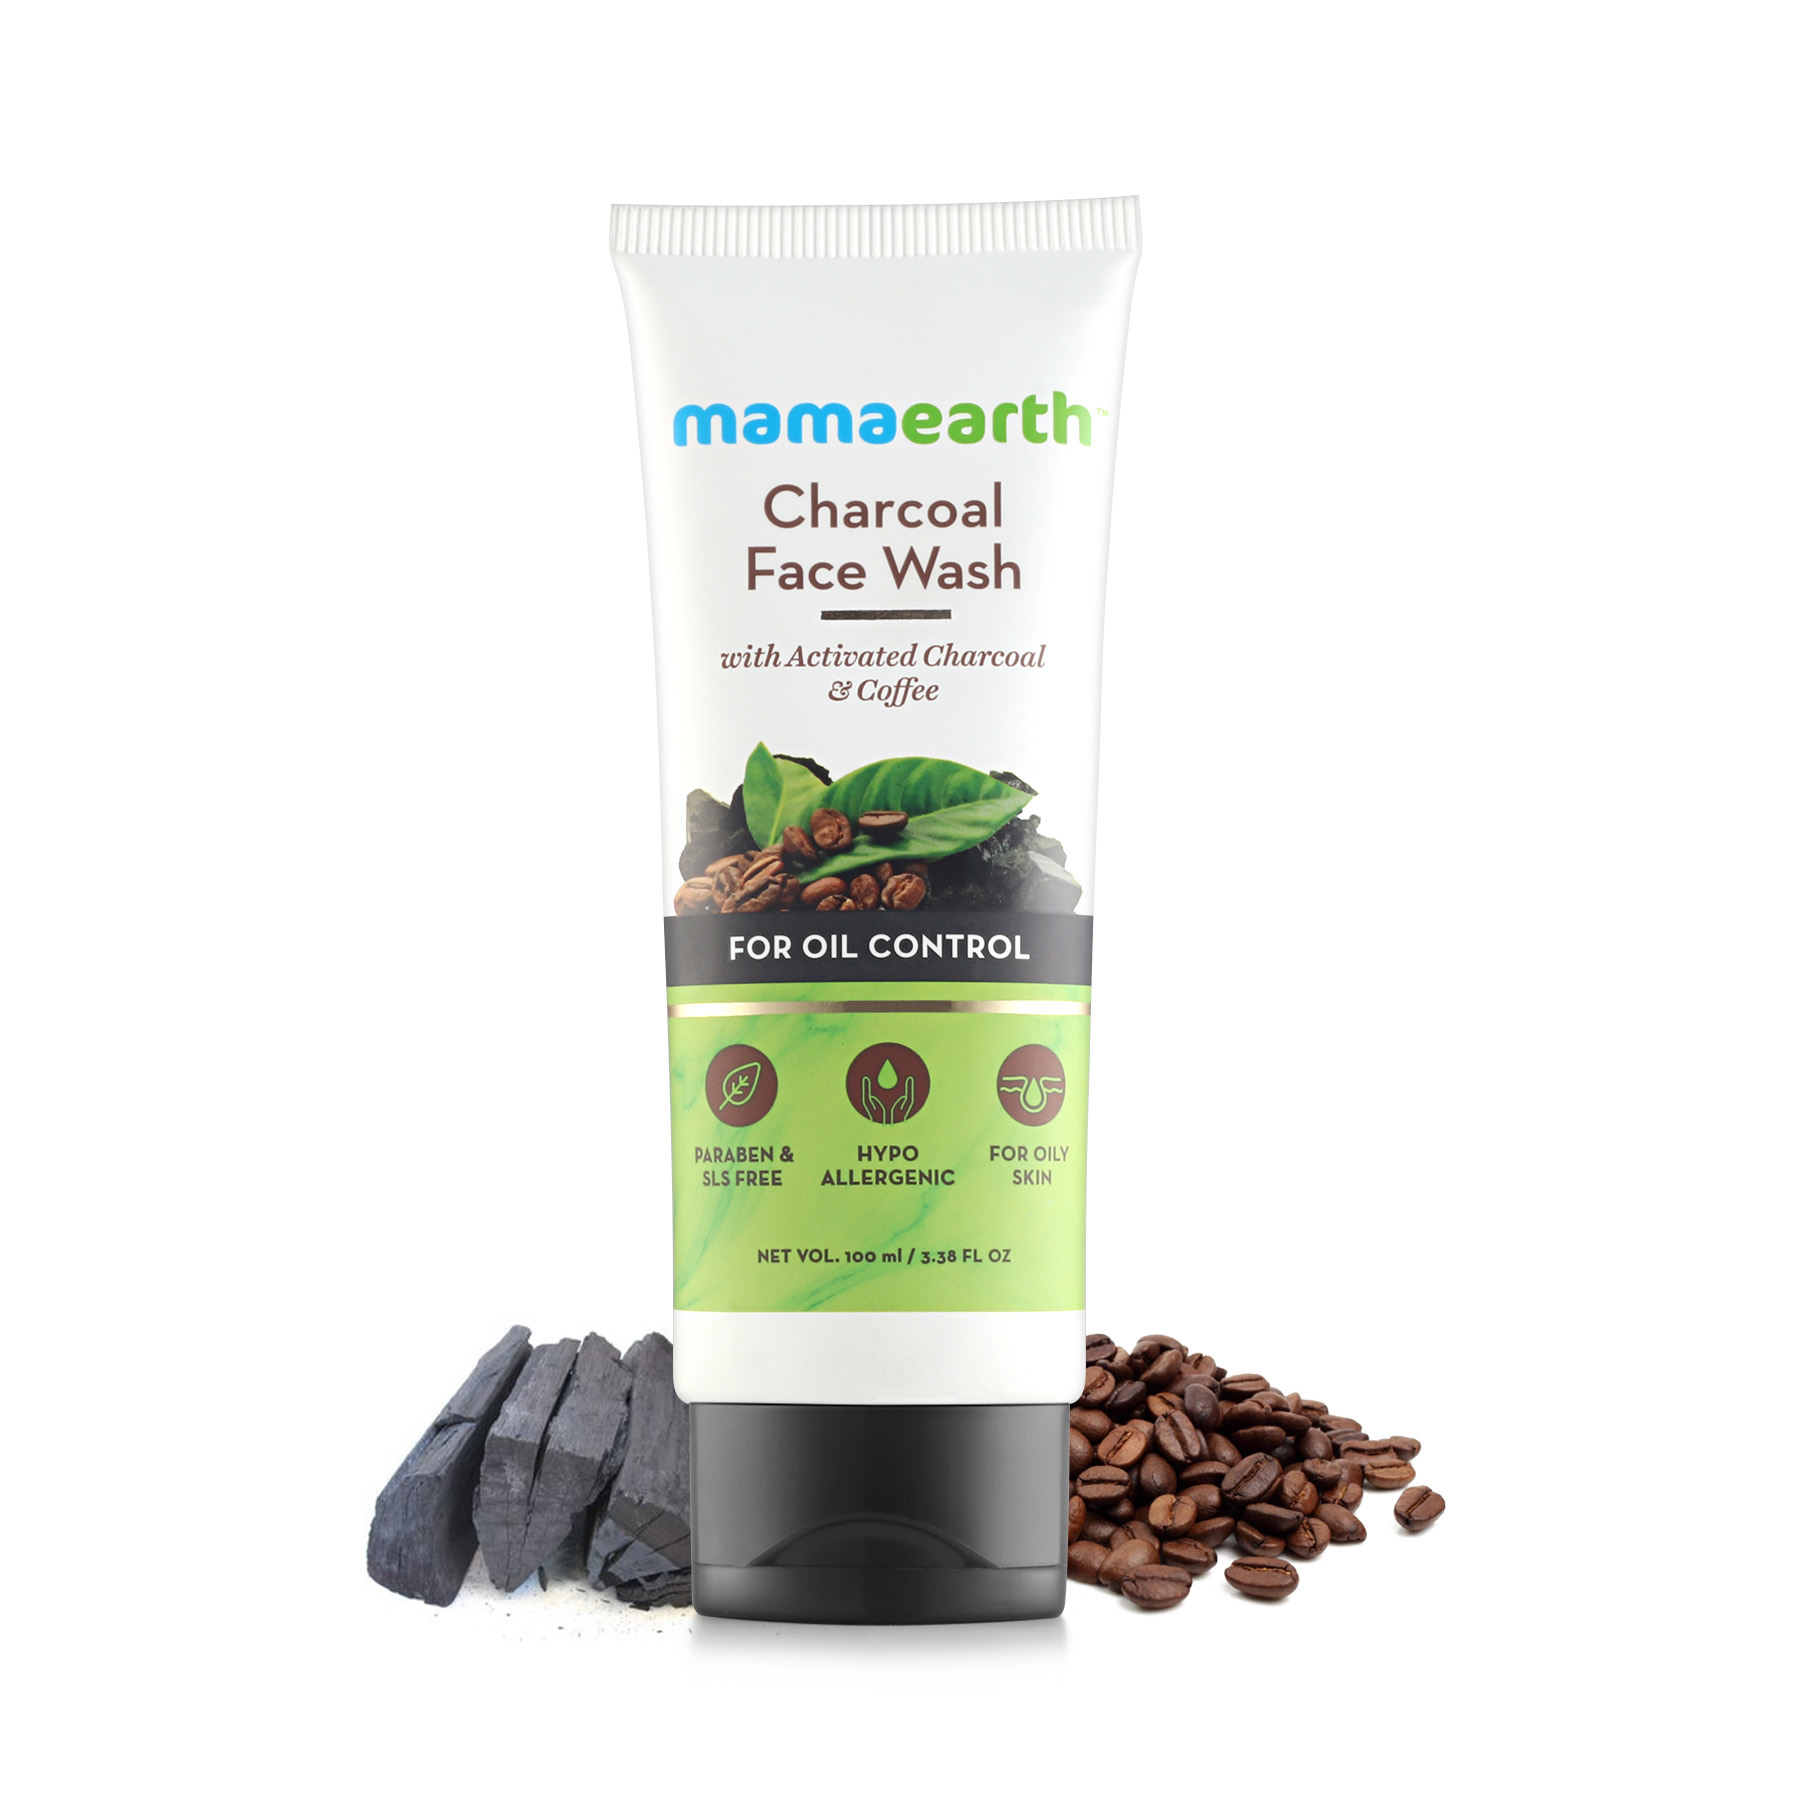 Mamaearth Charcoal Natural Face Wash For Oil Control And Pollution Defence